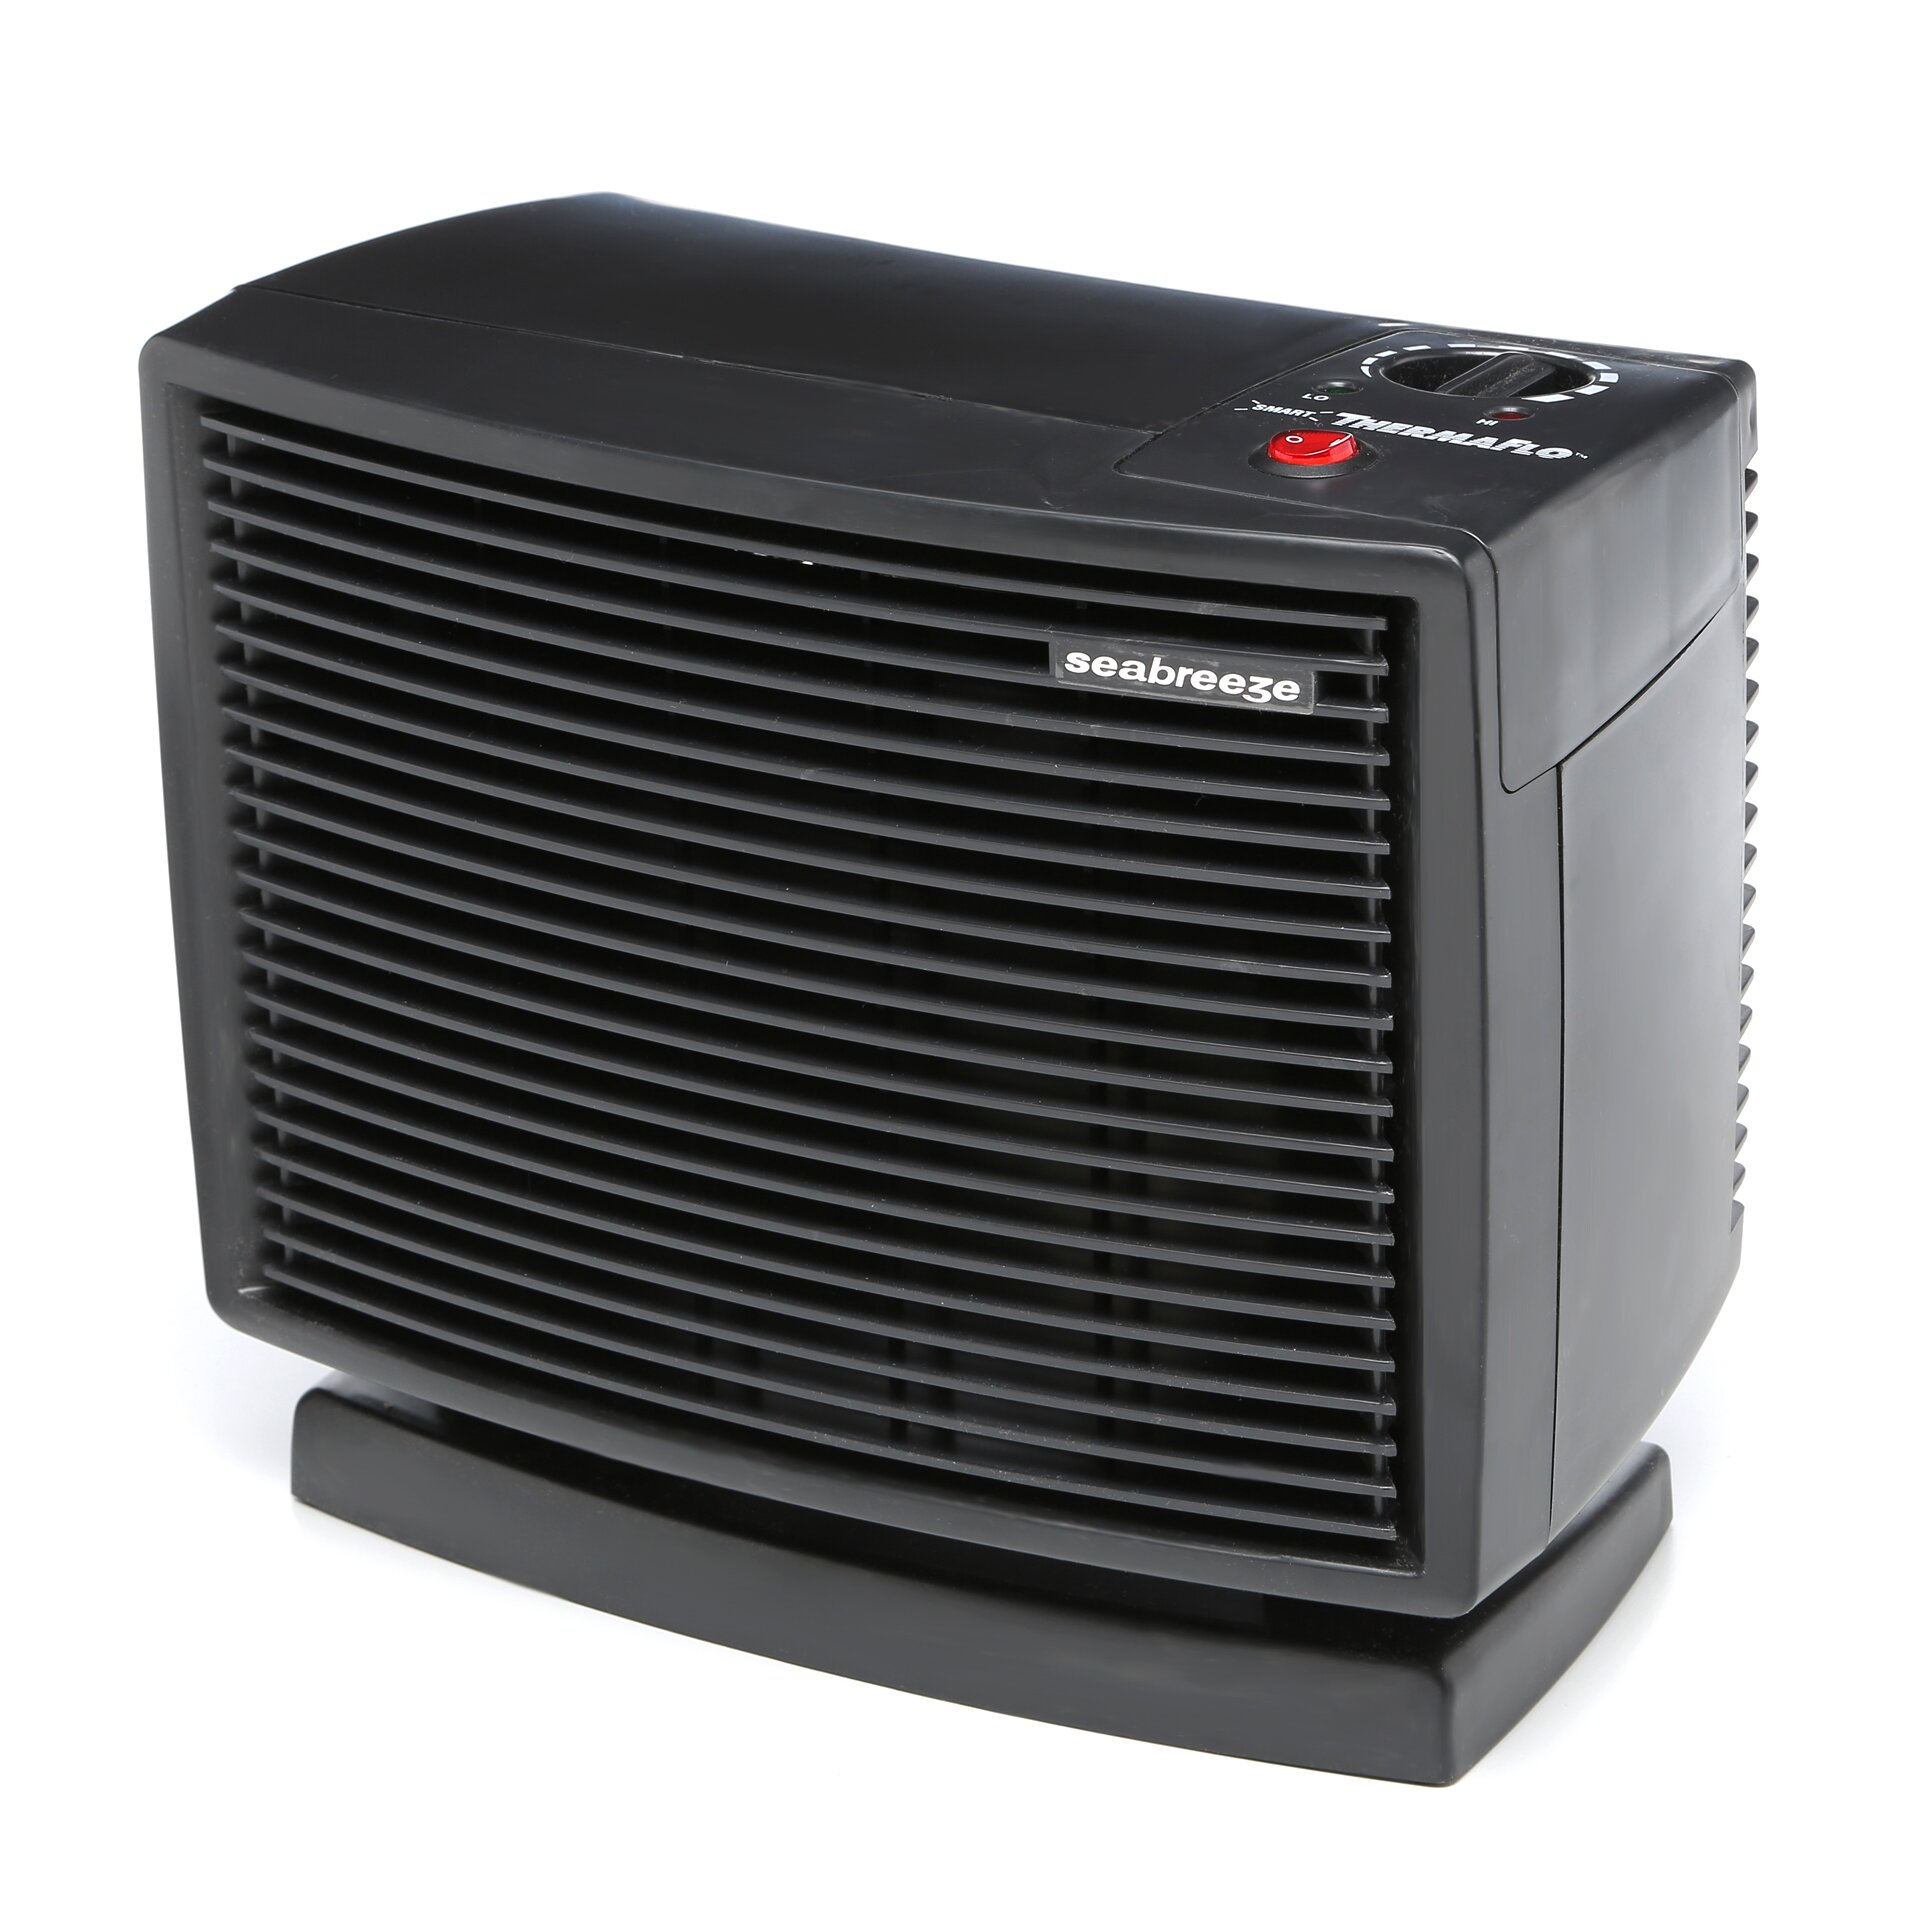 Seabreeze electric thermaflo 5 120 btu portable electric fan compact heater reviews wayfair - Best small space heaters reviews concept ...